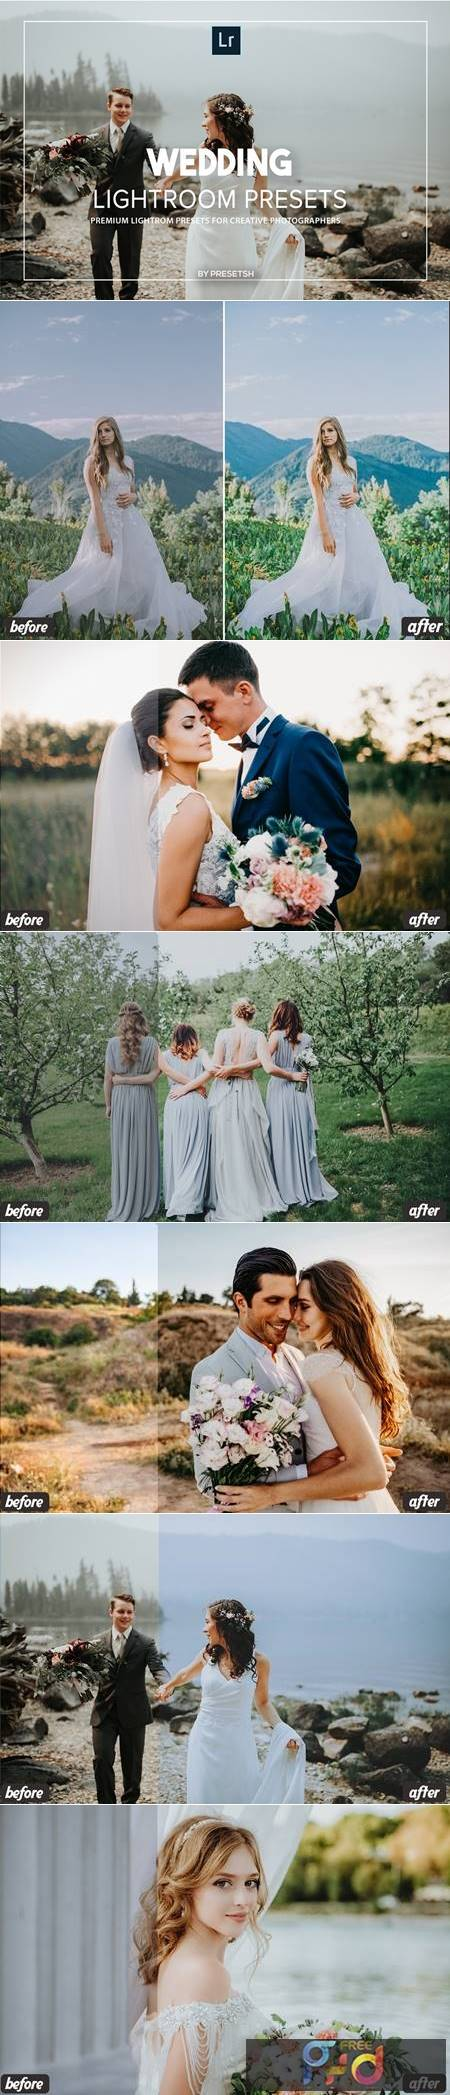 Wedding Lightroom Presets 5346723 1